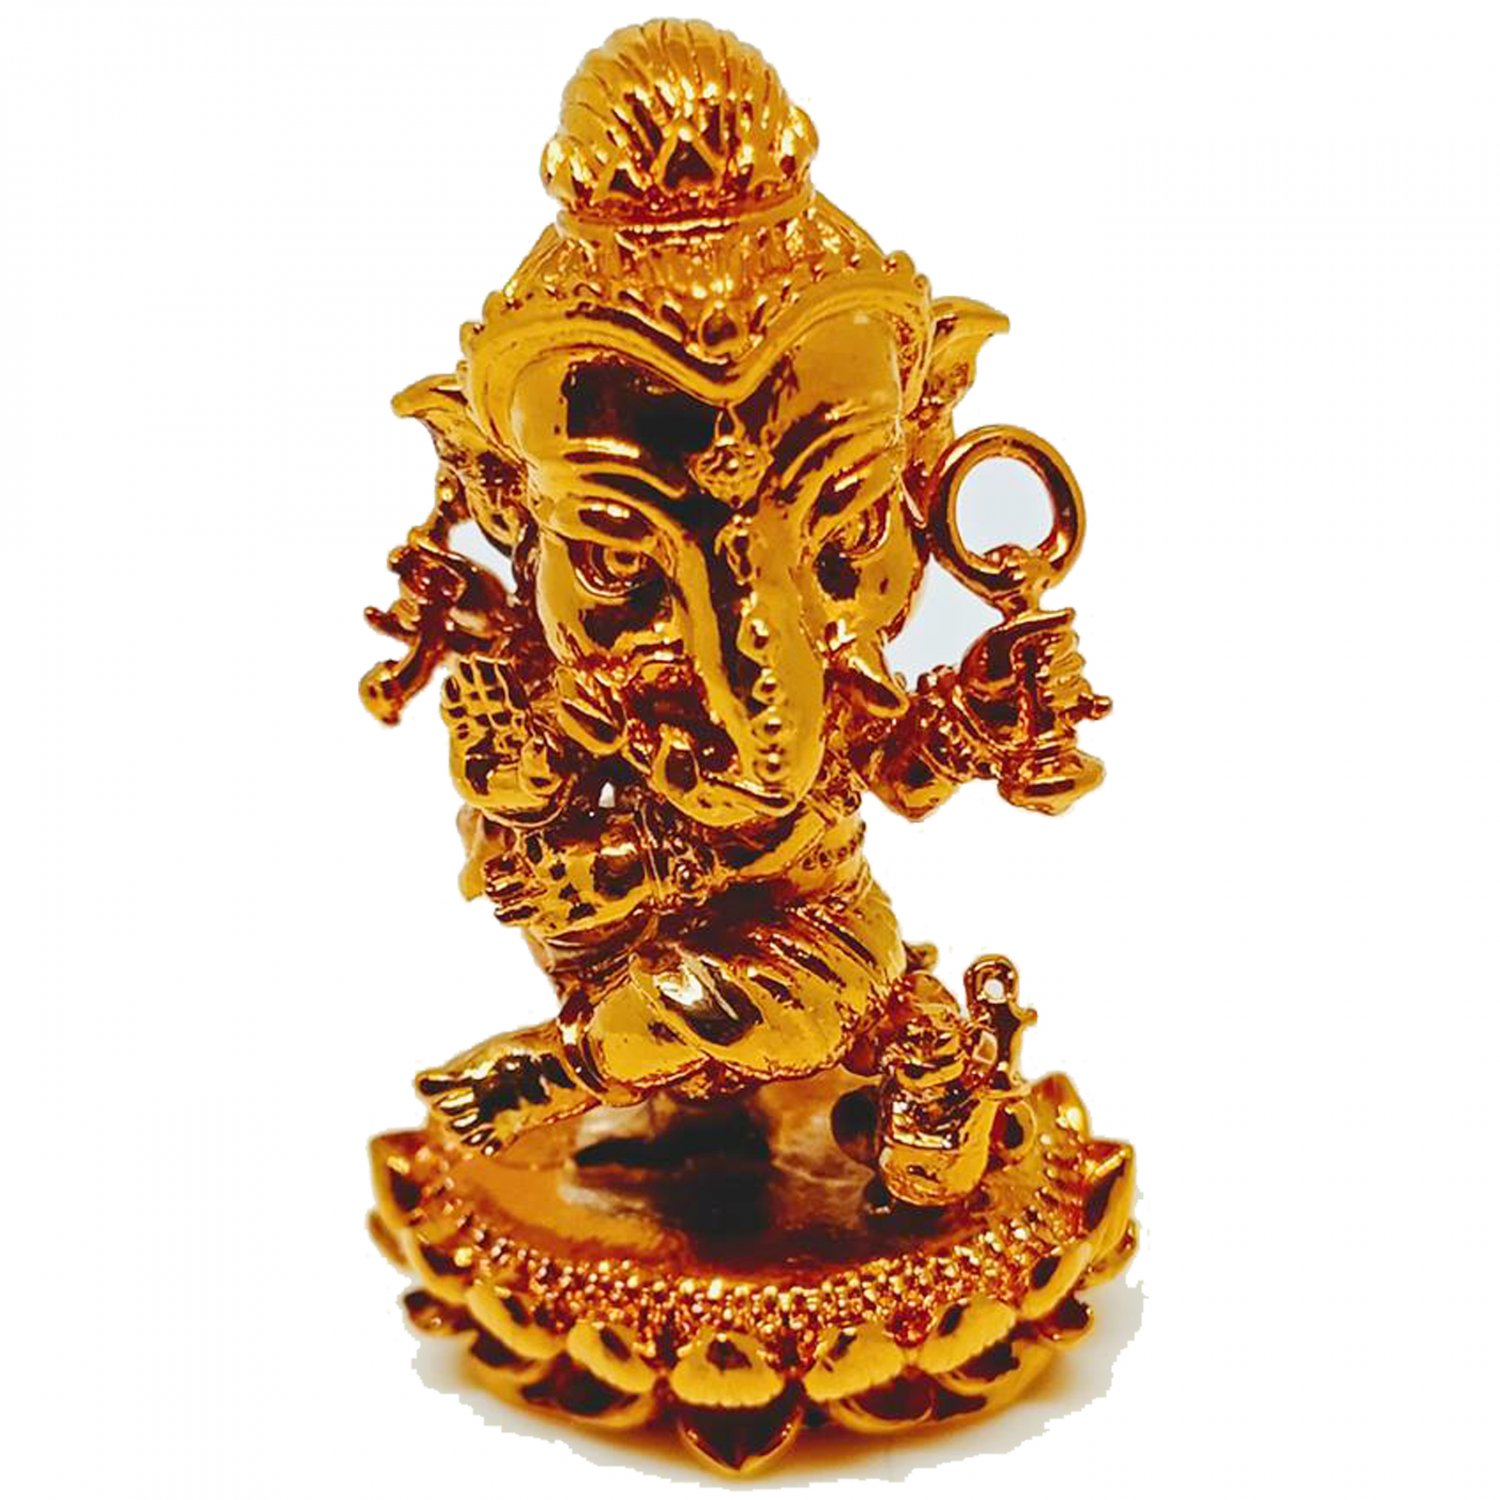 Thai Amulet Mini Lord Ganesha Statue Great God Hindu Pendant by Archan Amnarj Mahaweero